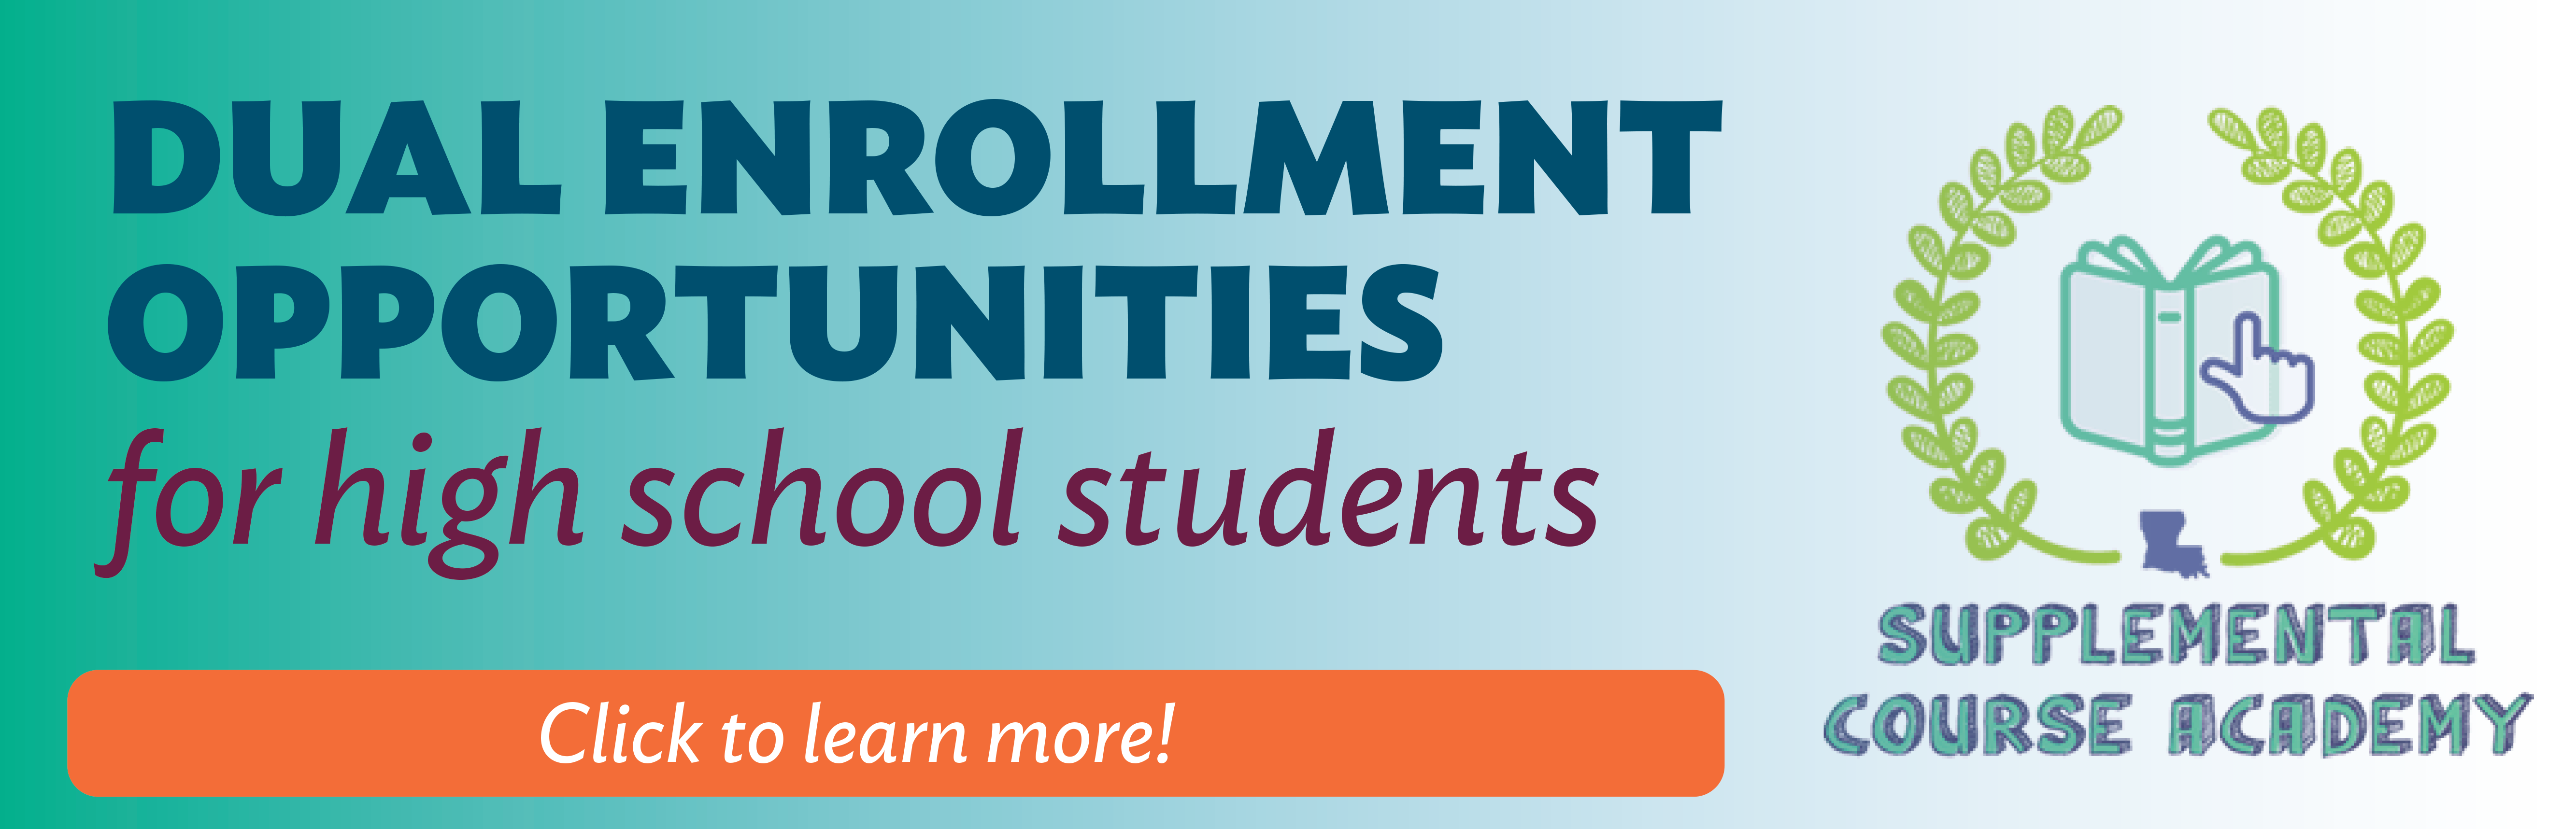 Dual Enrollment Opportunities for High School Students Banner.